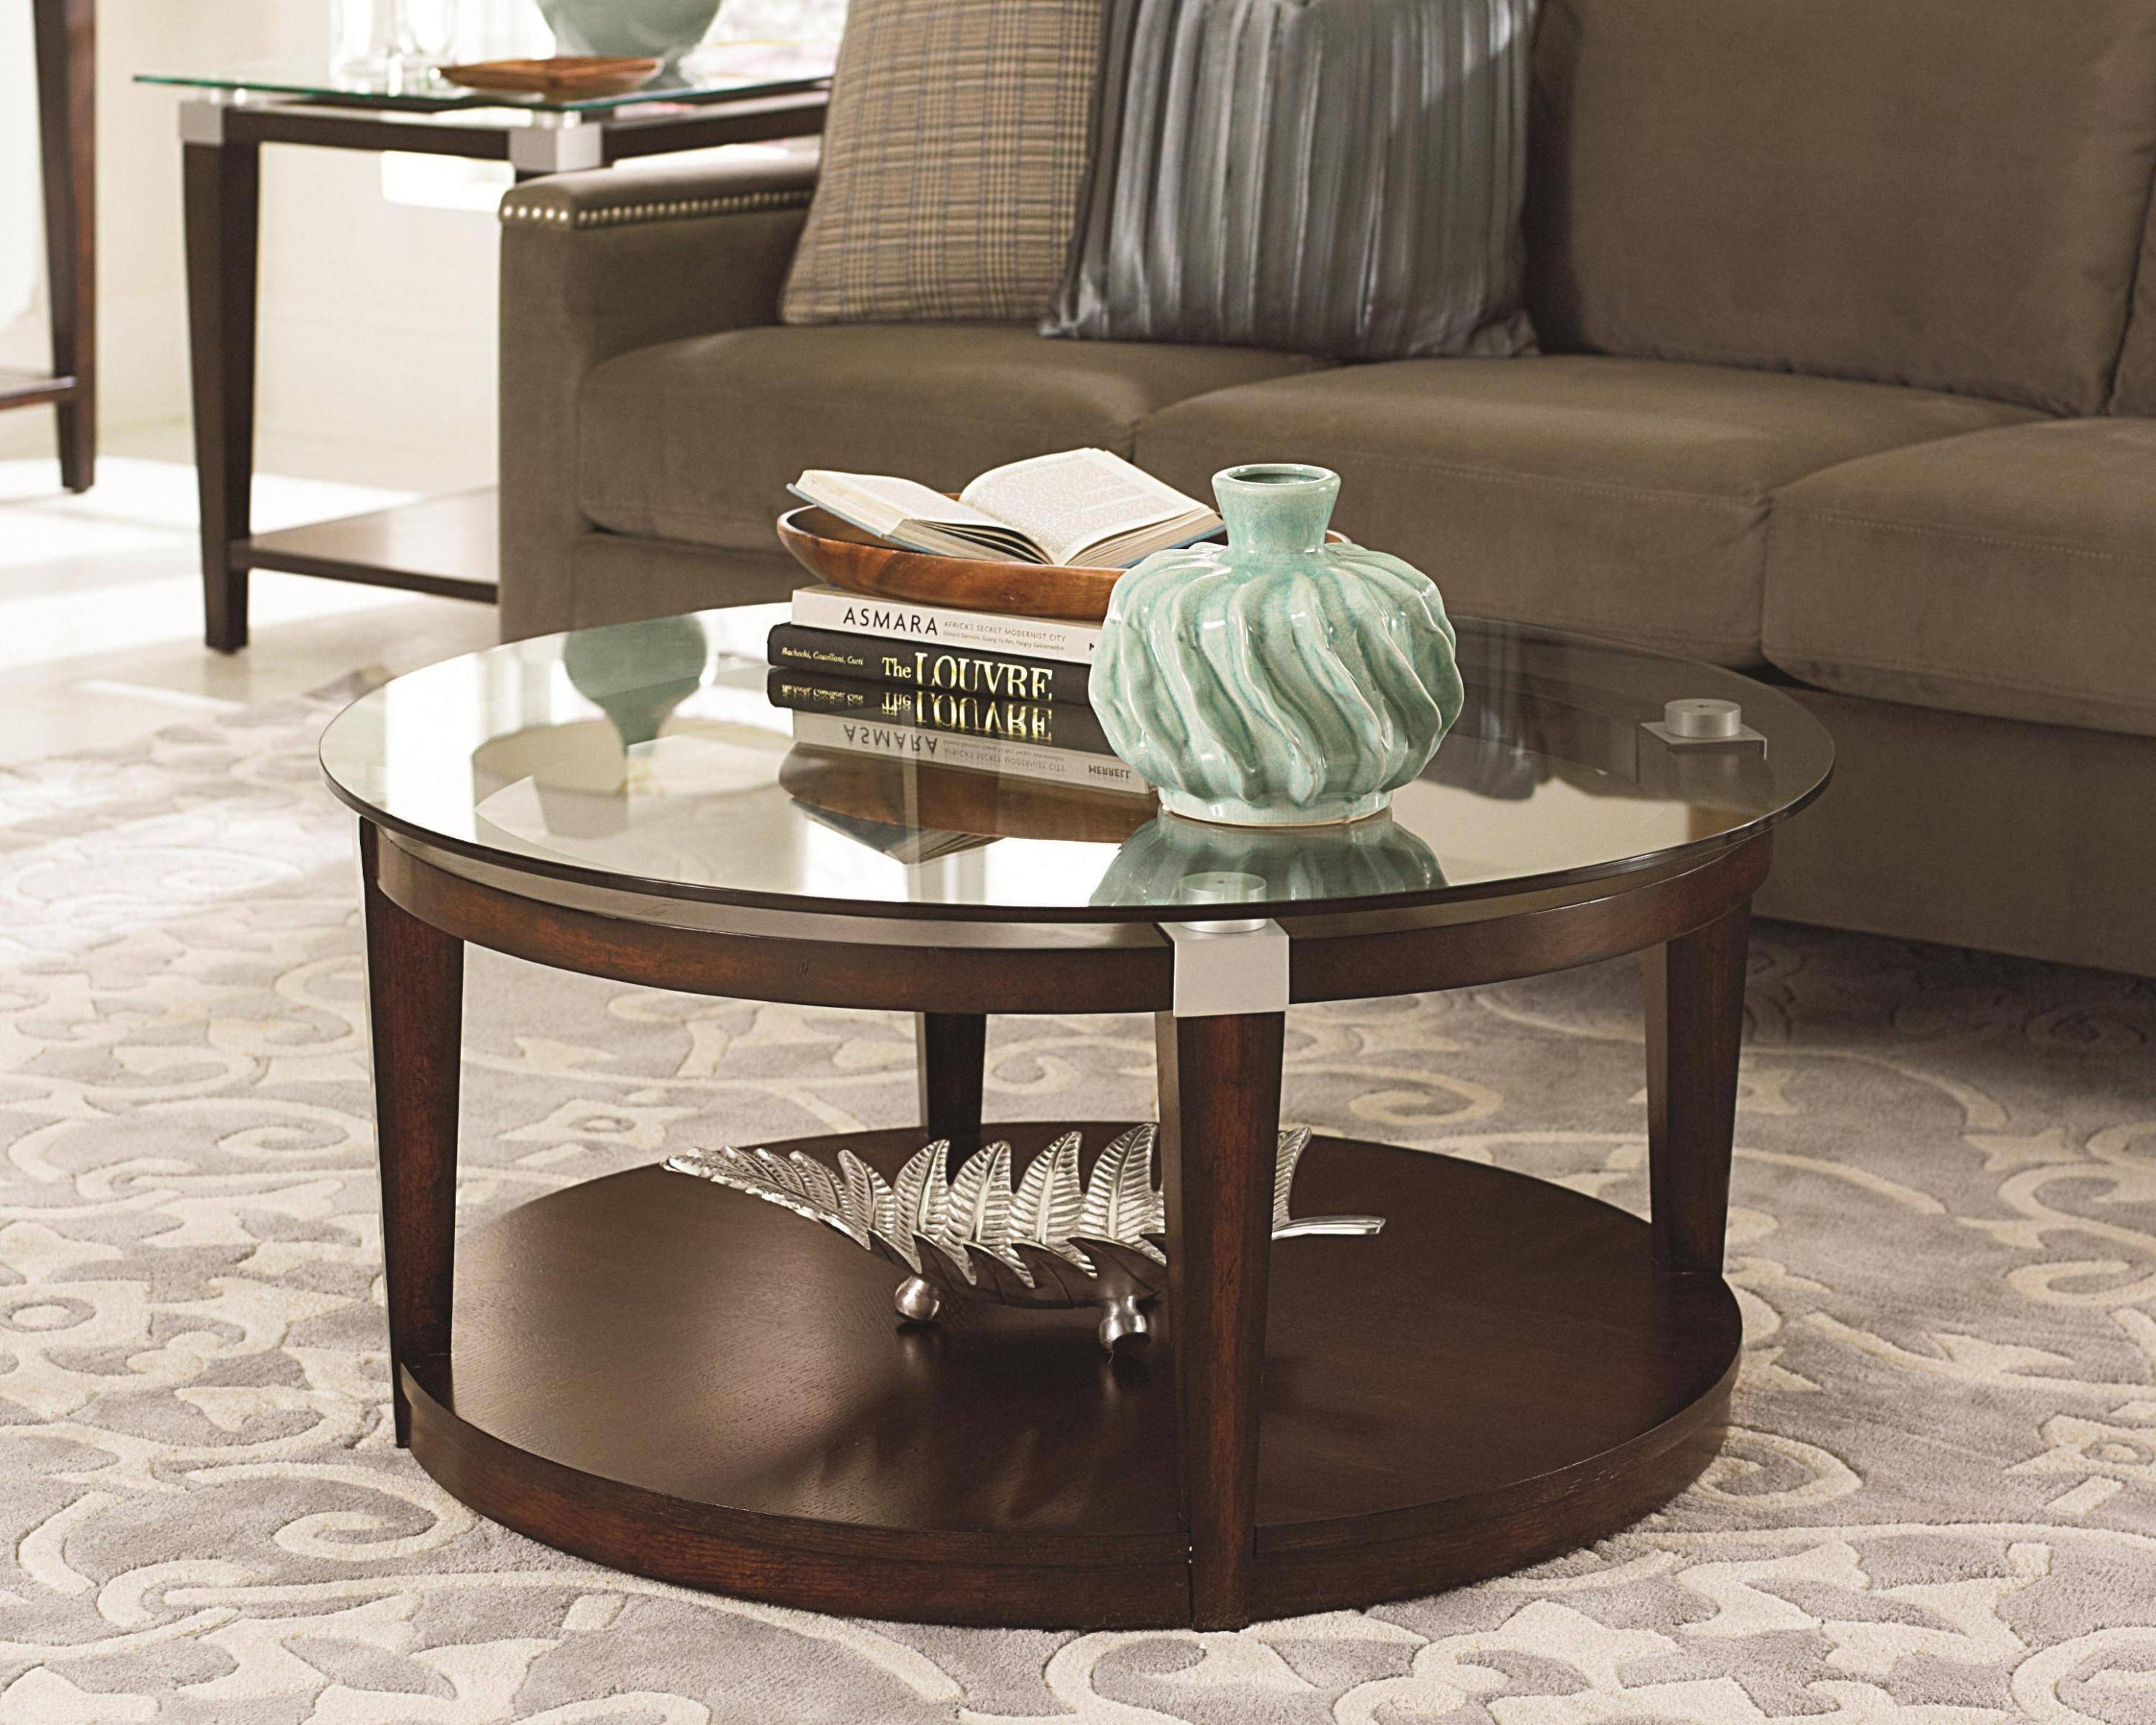 Coffee Tables: Best Small Round Coffee Tables Designs Wood Coffee regarding Round Coffee Tables With Storage (Image 9 of 30)